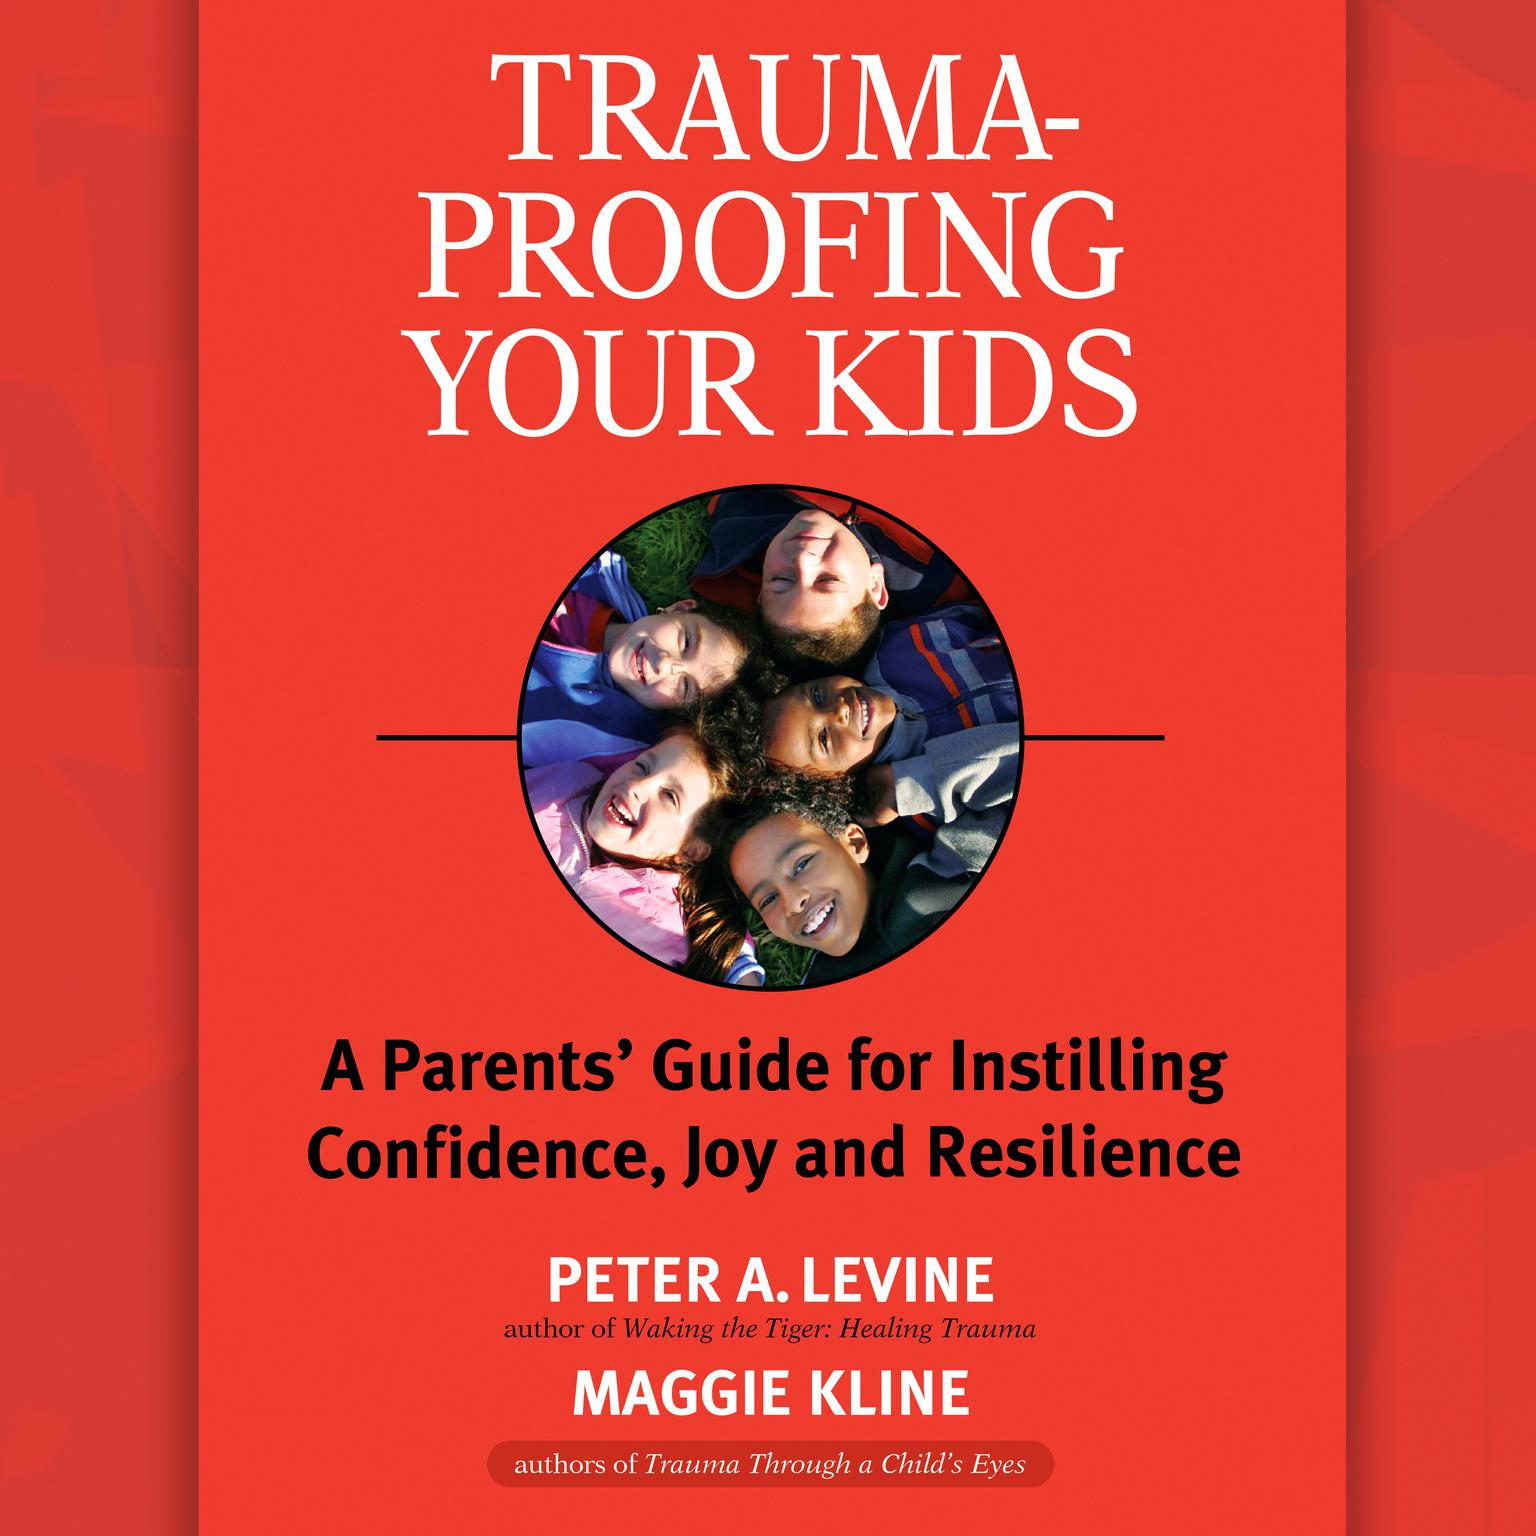 Trauma-Proofing Your Kids: A Parents Guide for Instilling Confidence, Joy and Resilience Audiobook, by Peter A. Levine